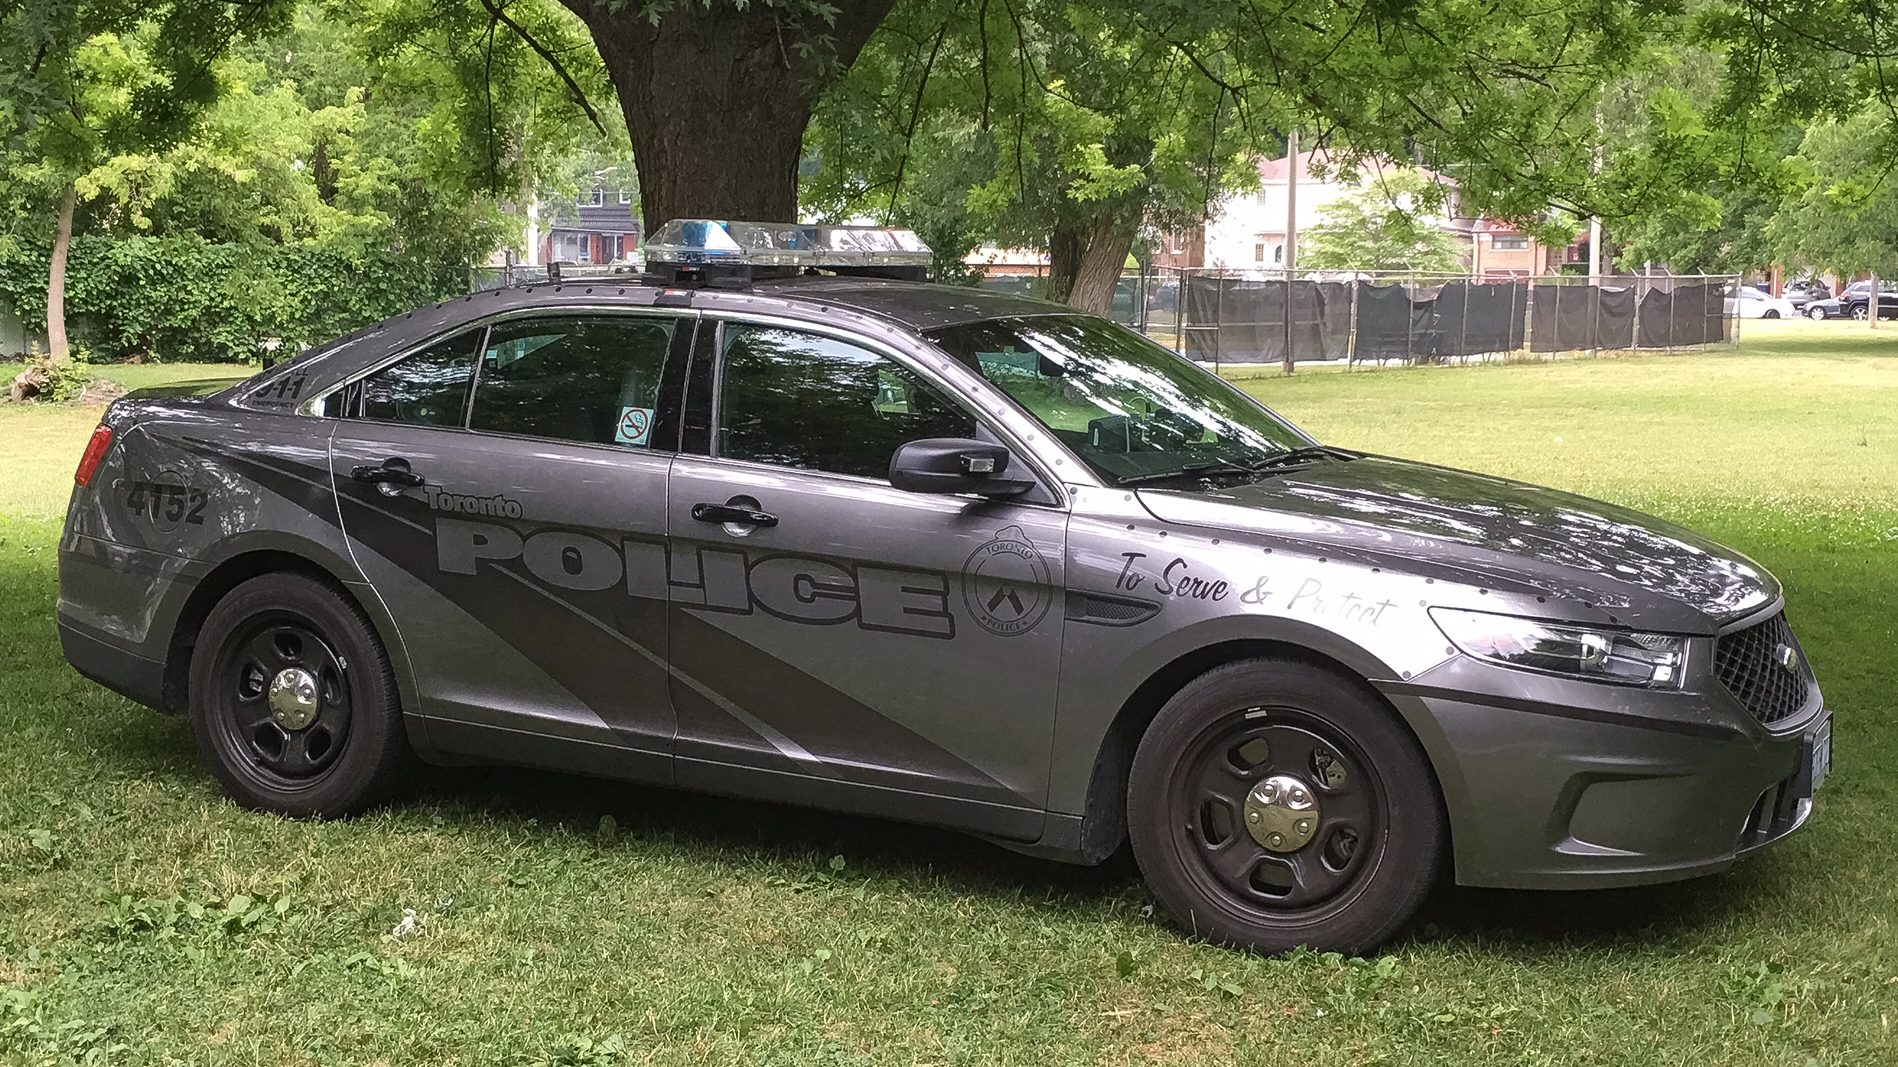 Exclusive Toronto Police Cruisers Becoming More Stealth